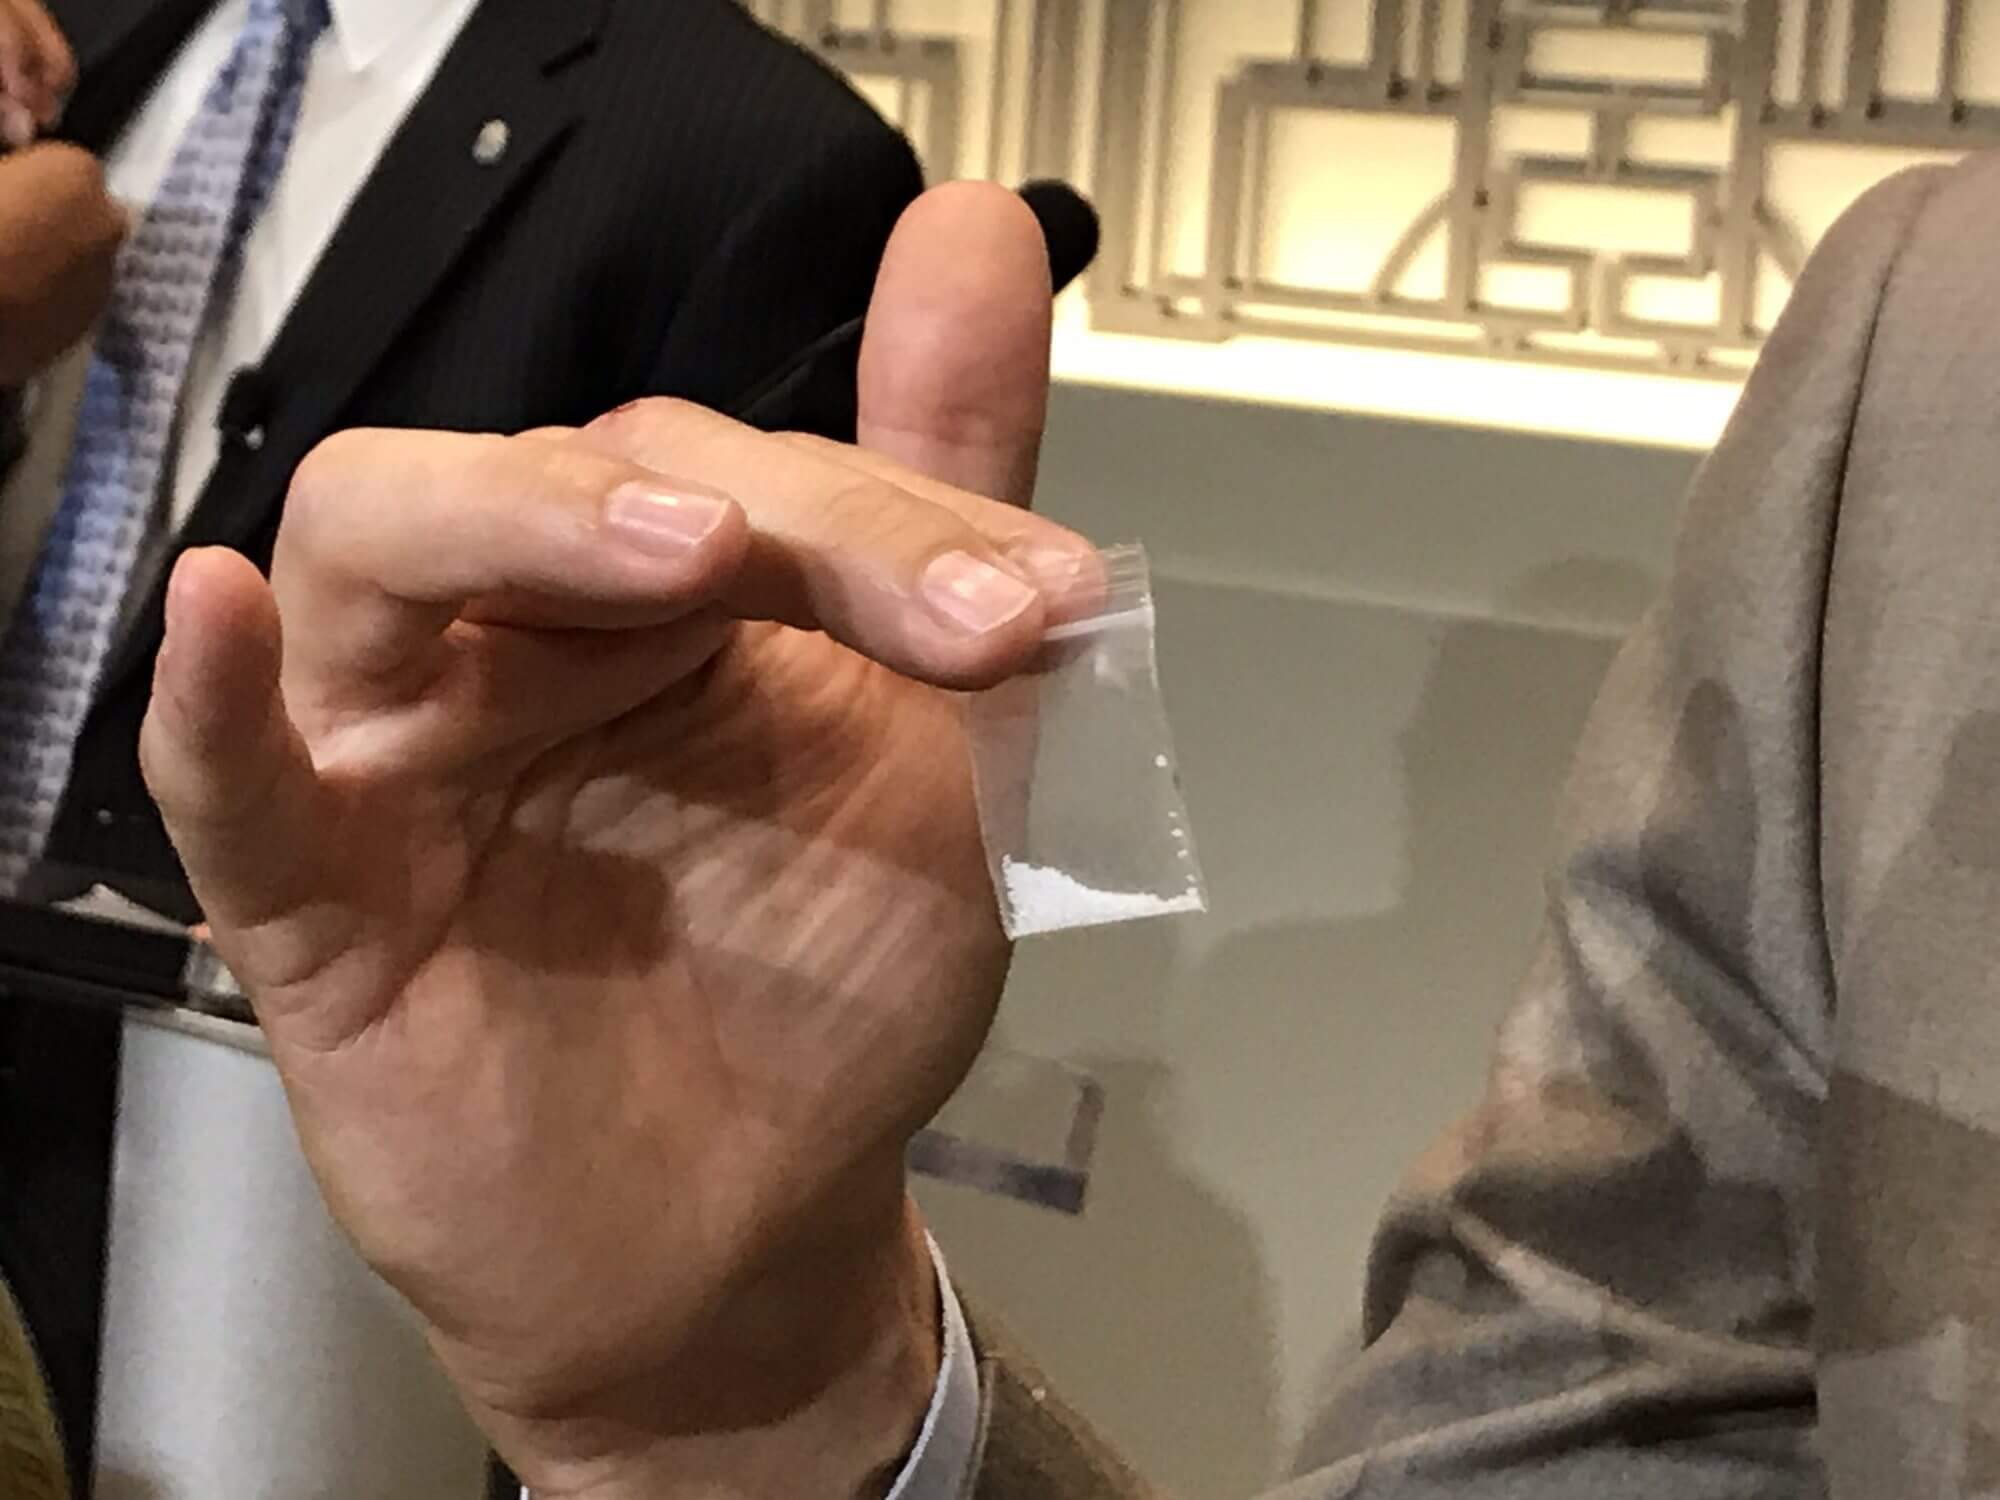 During a press conference, Peter Stout, Ph.D., of the Houston Forensic Science Center, holds bag of sugar representing the amount of carfentanil that could be lethal to up to 4,000 people. (Twitter/Mel Ragsdale Darragh)